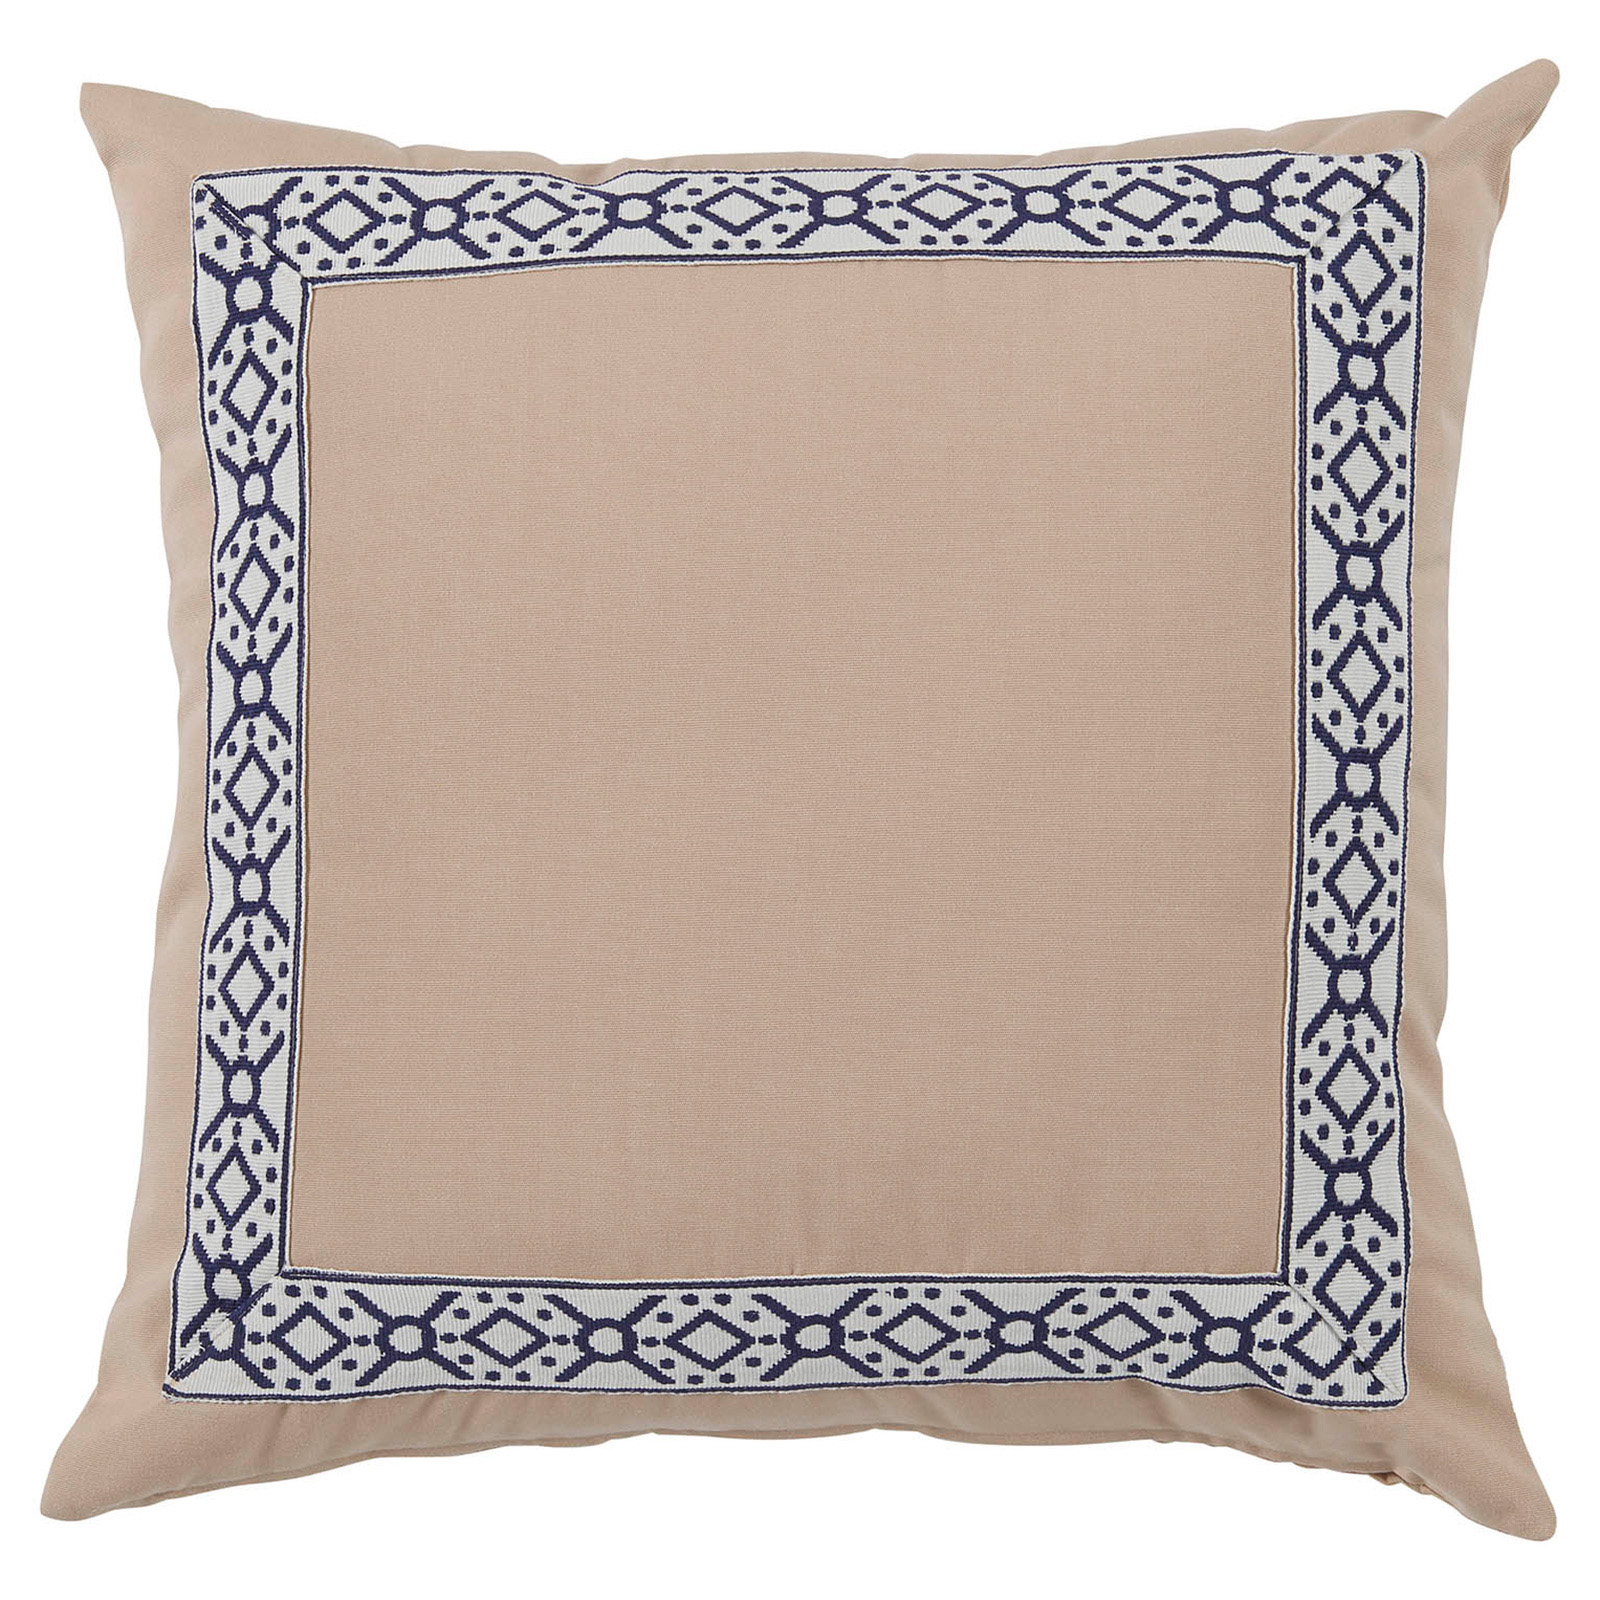 Perri Modern Global Navy Trim Beige Outdoor Pillow - 22x22